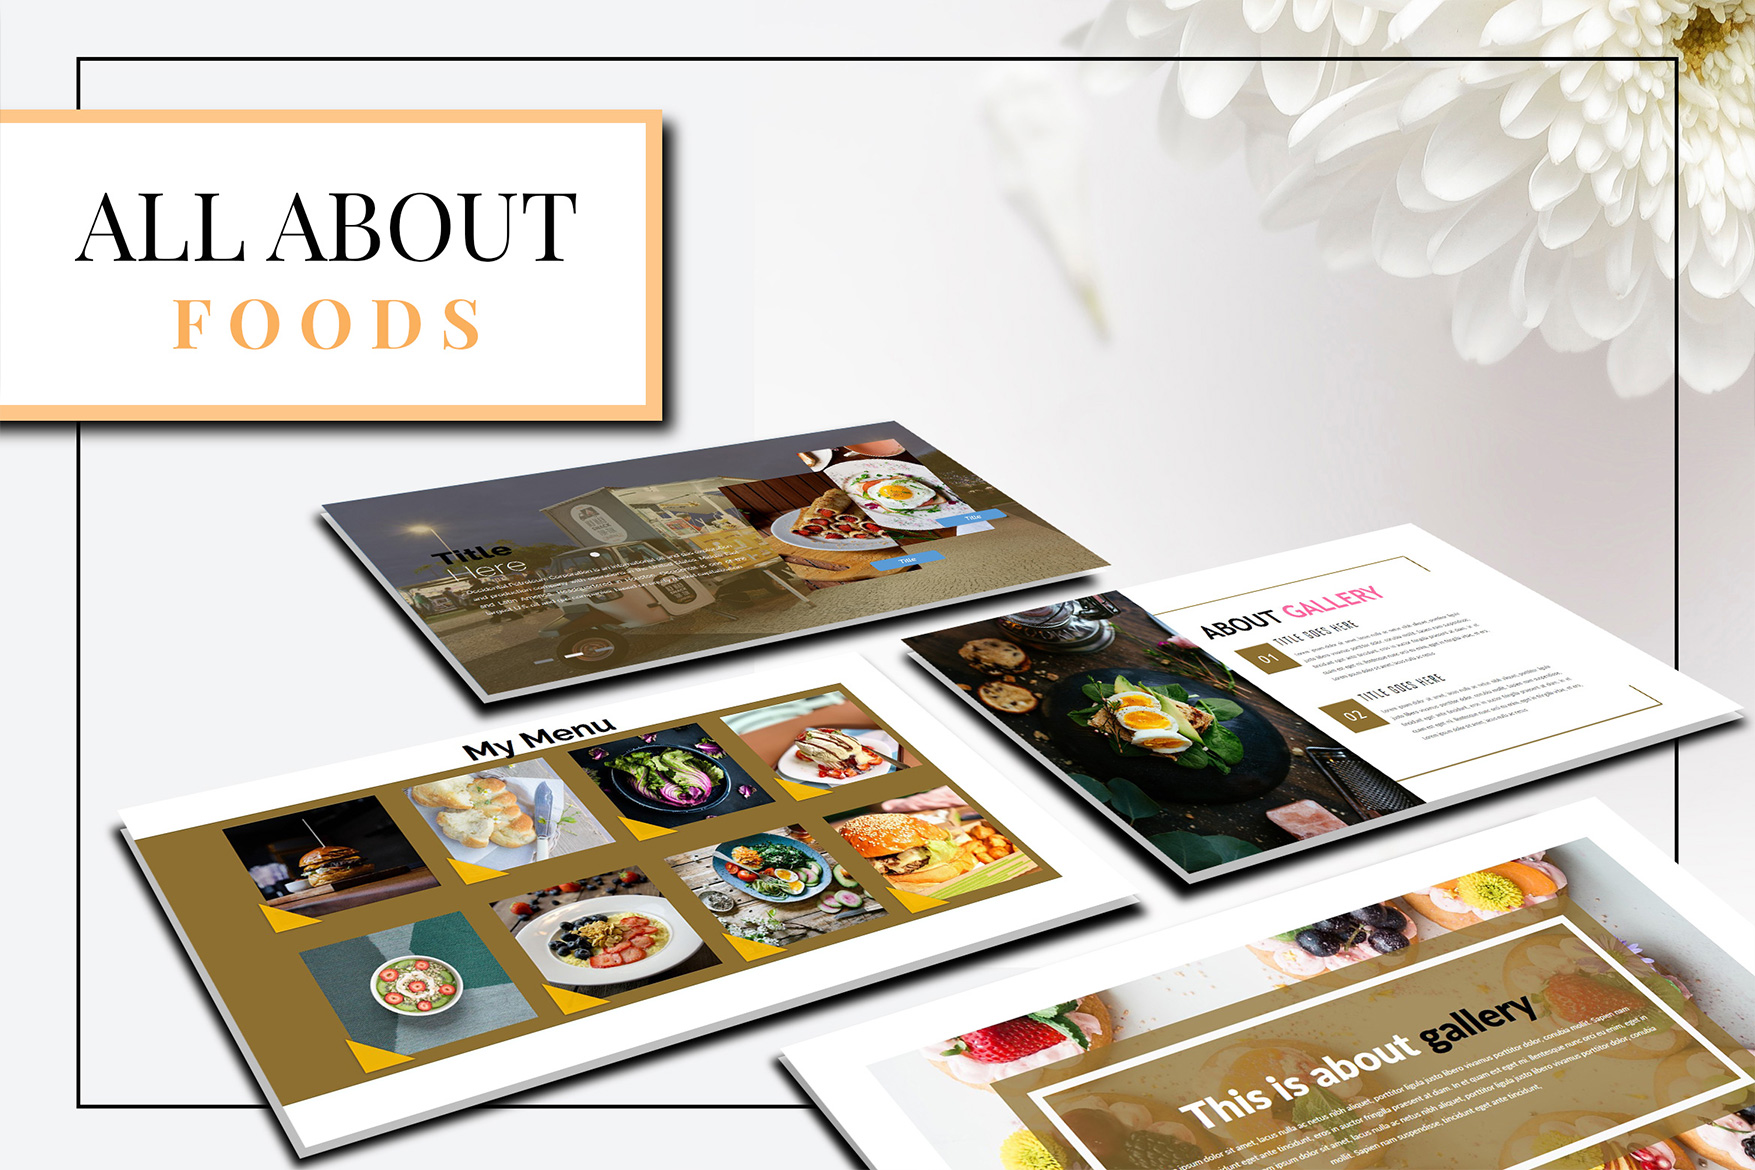 Delicious Food - Powerpoint Template example image 6